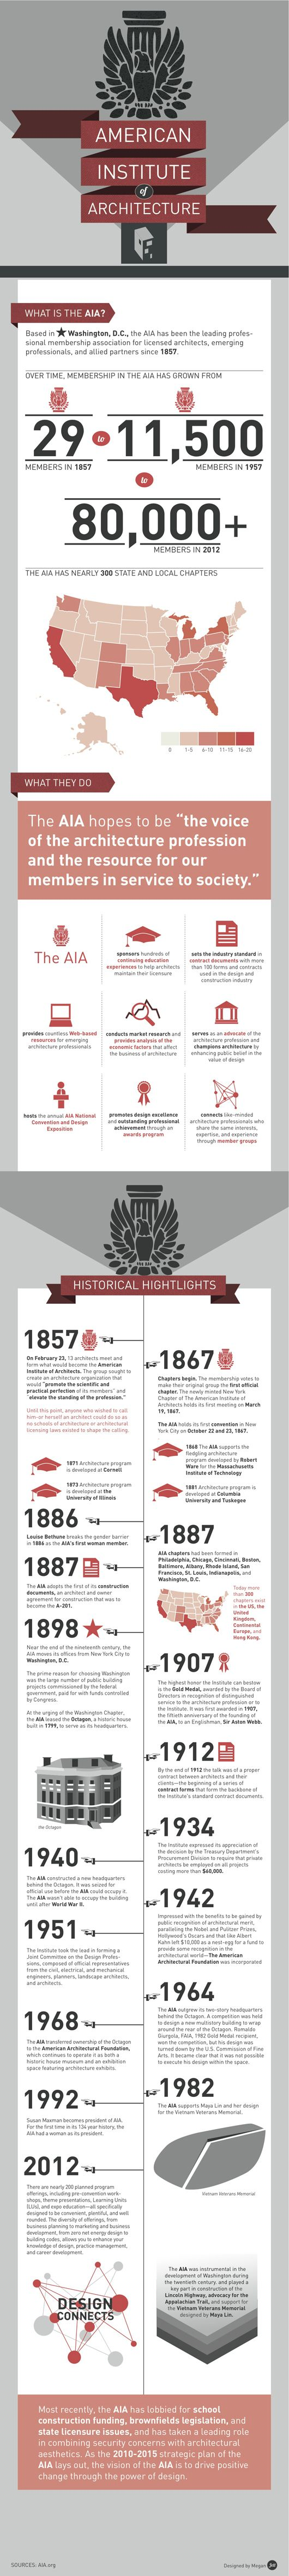 17 best infographics images on pinterest architecture infographic the aia history